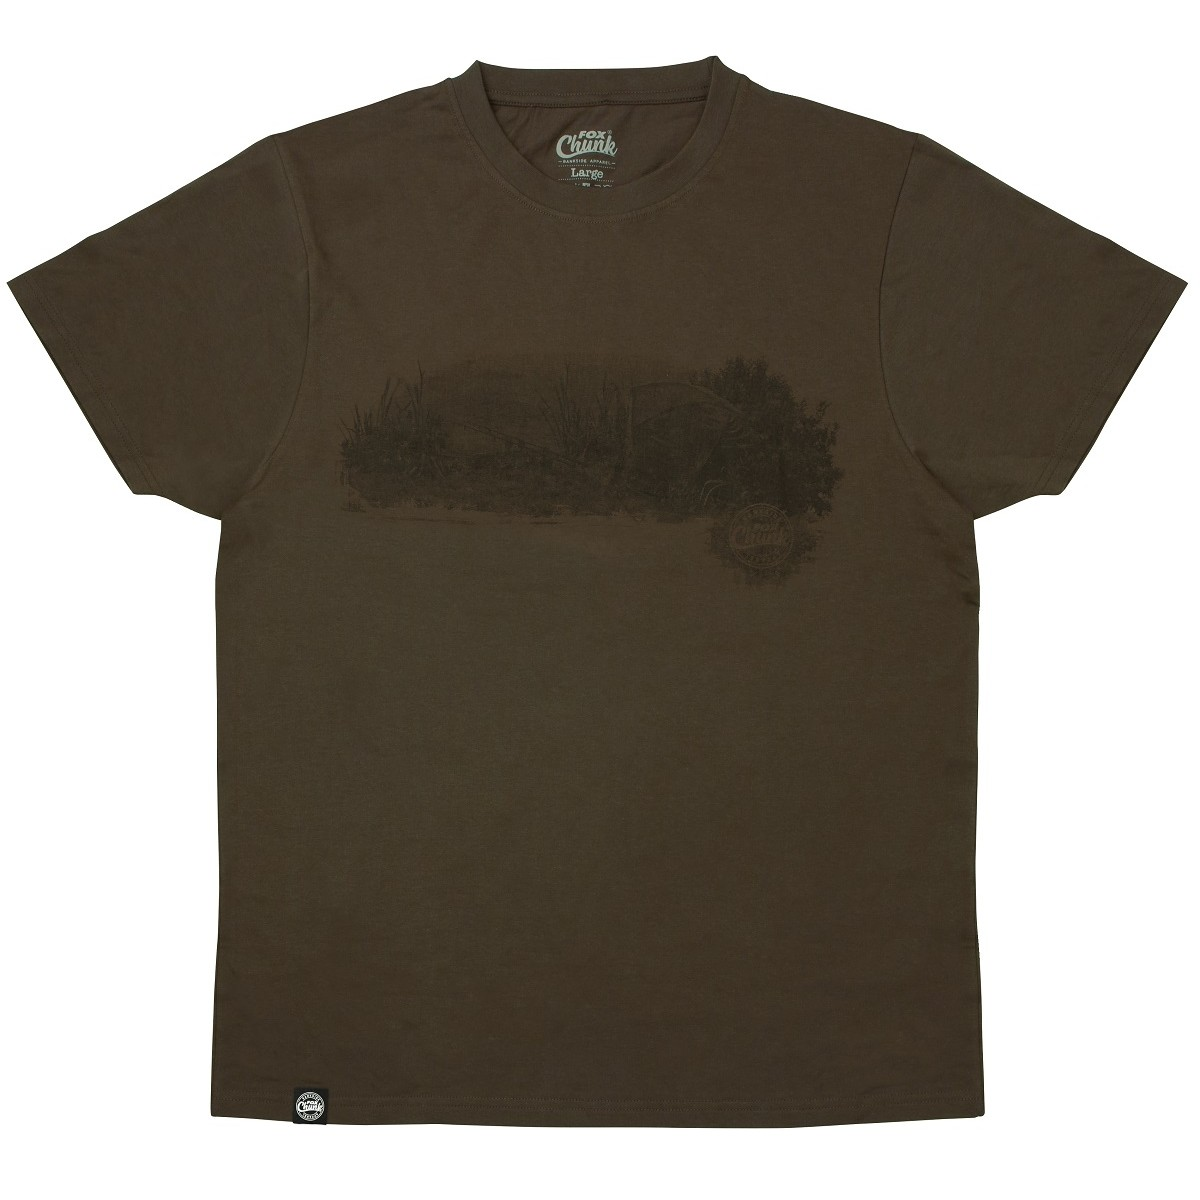 Тениска Fox Chunk Dark Khaki Scenic T-shirt